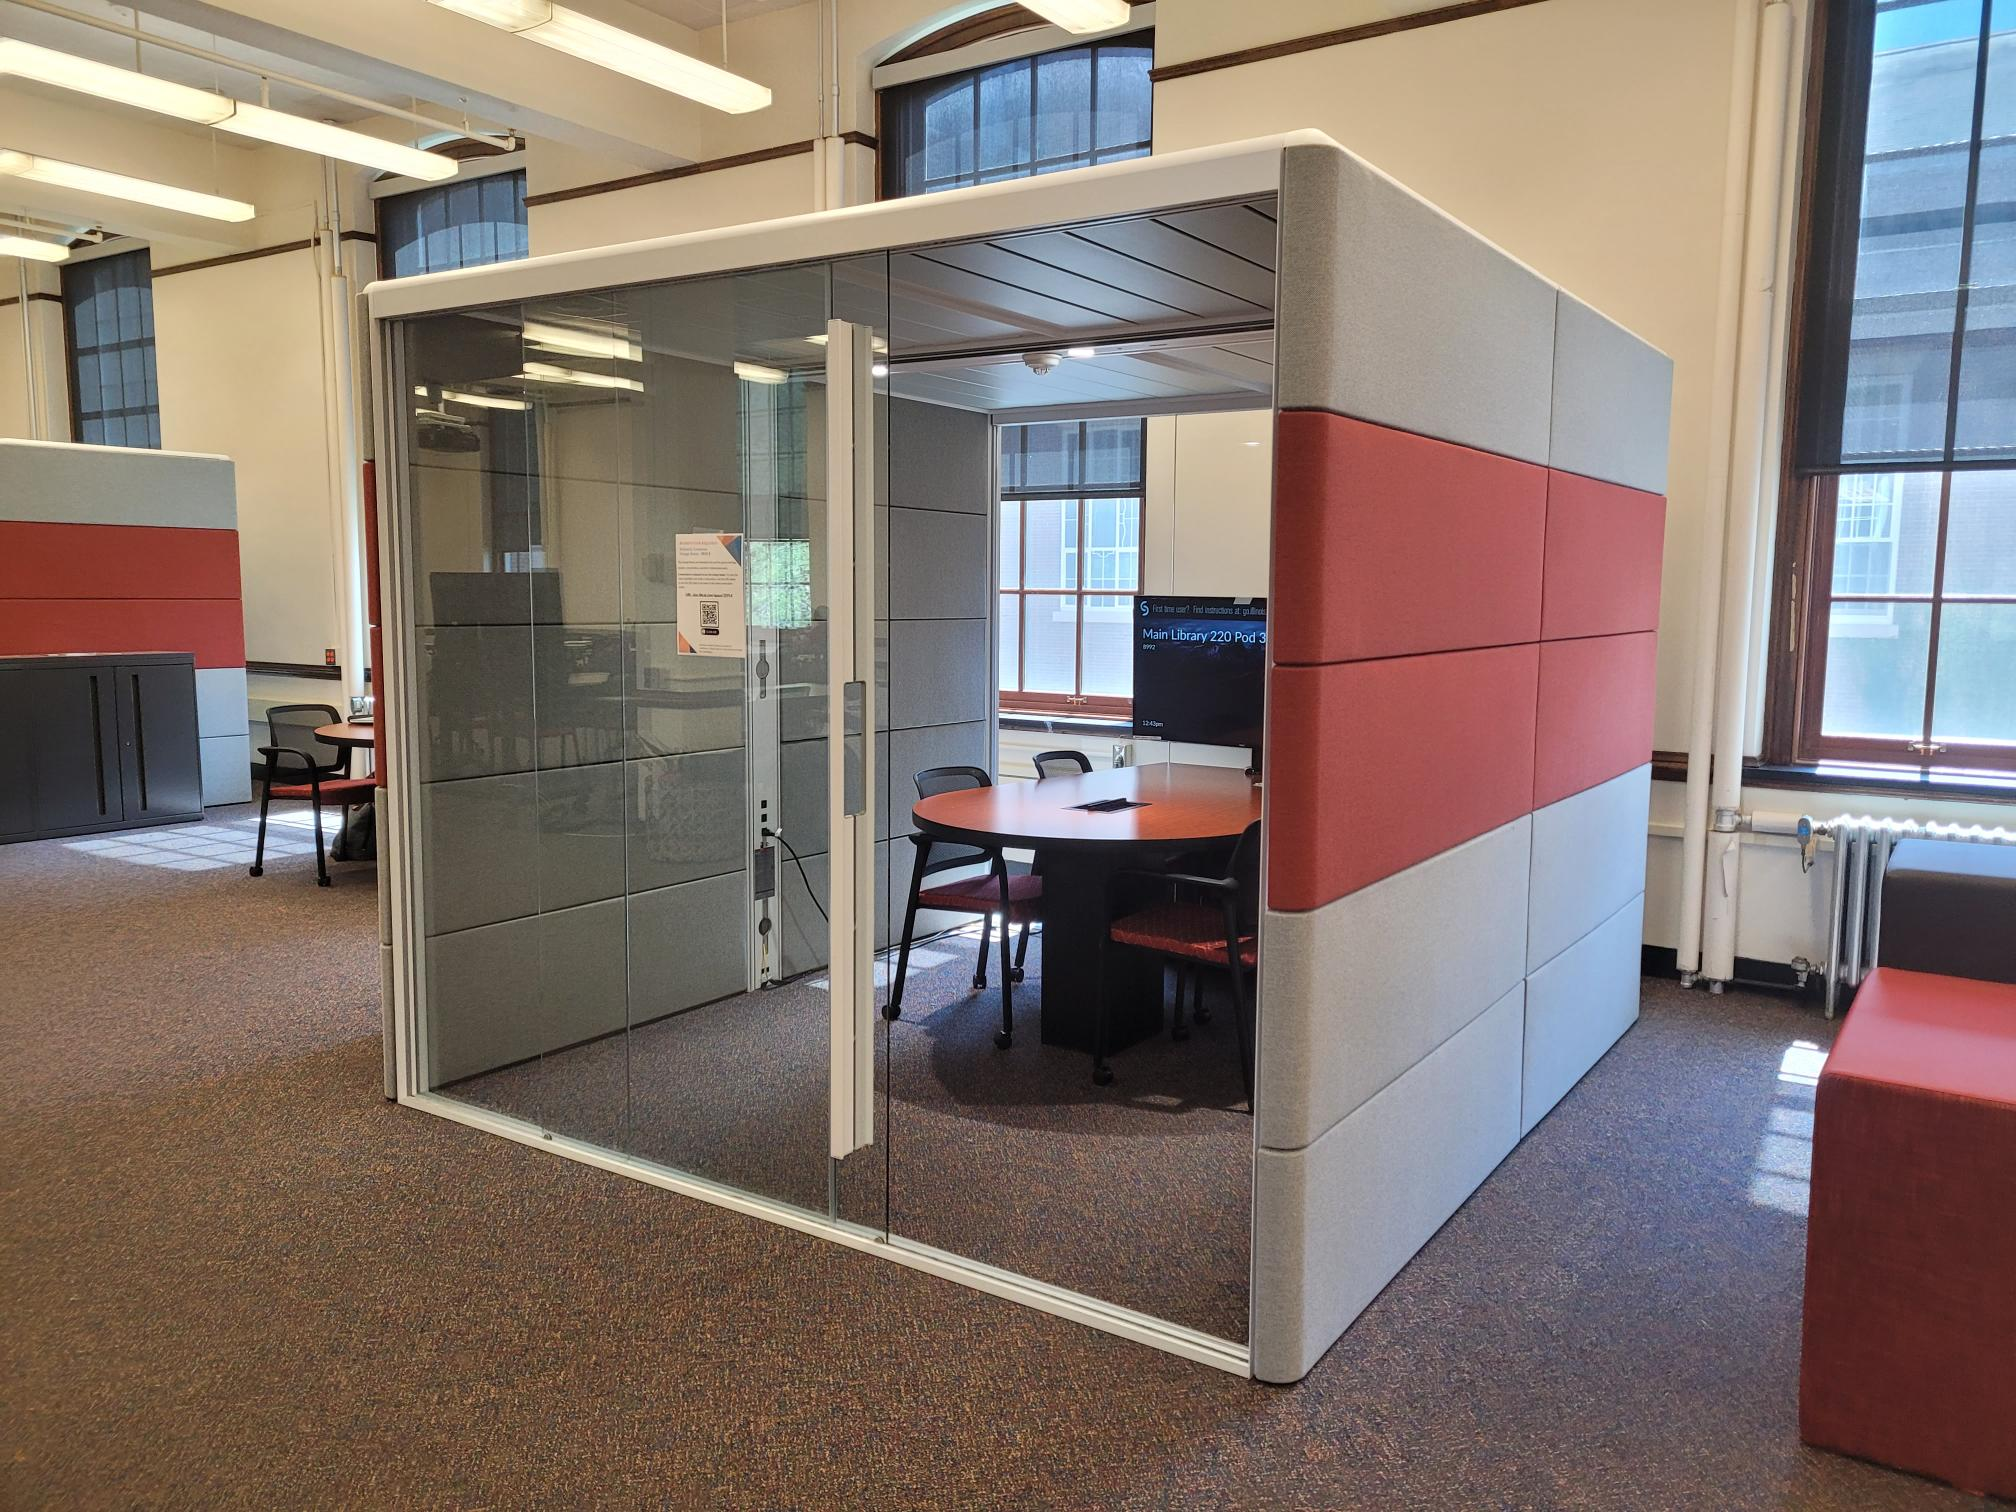 Individual study pod with clear glass doors